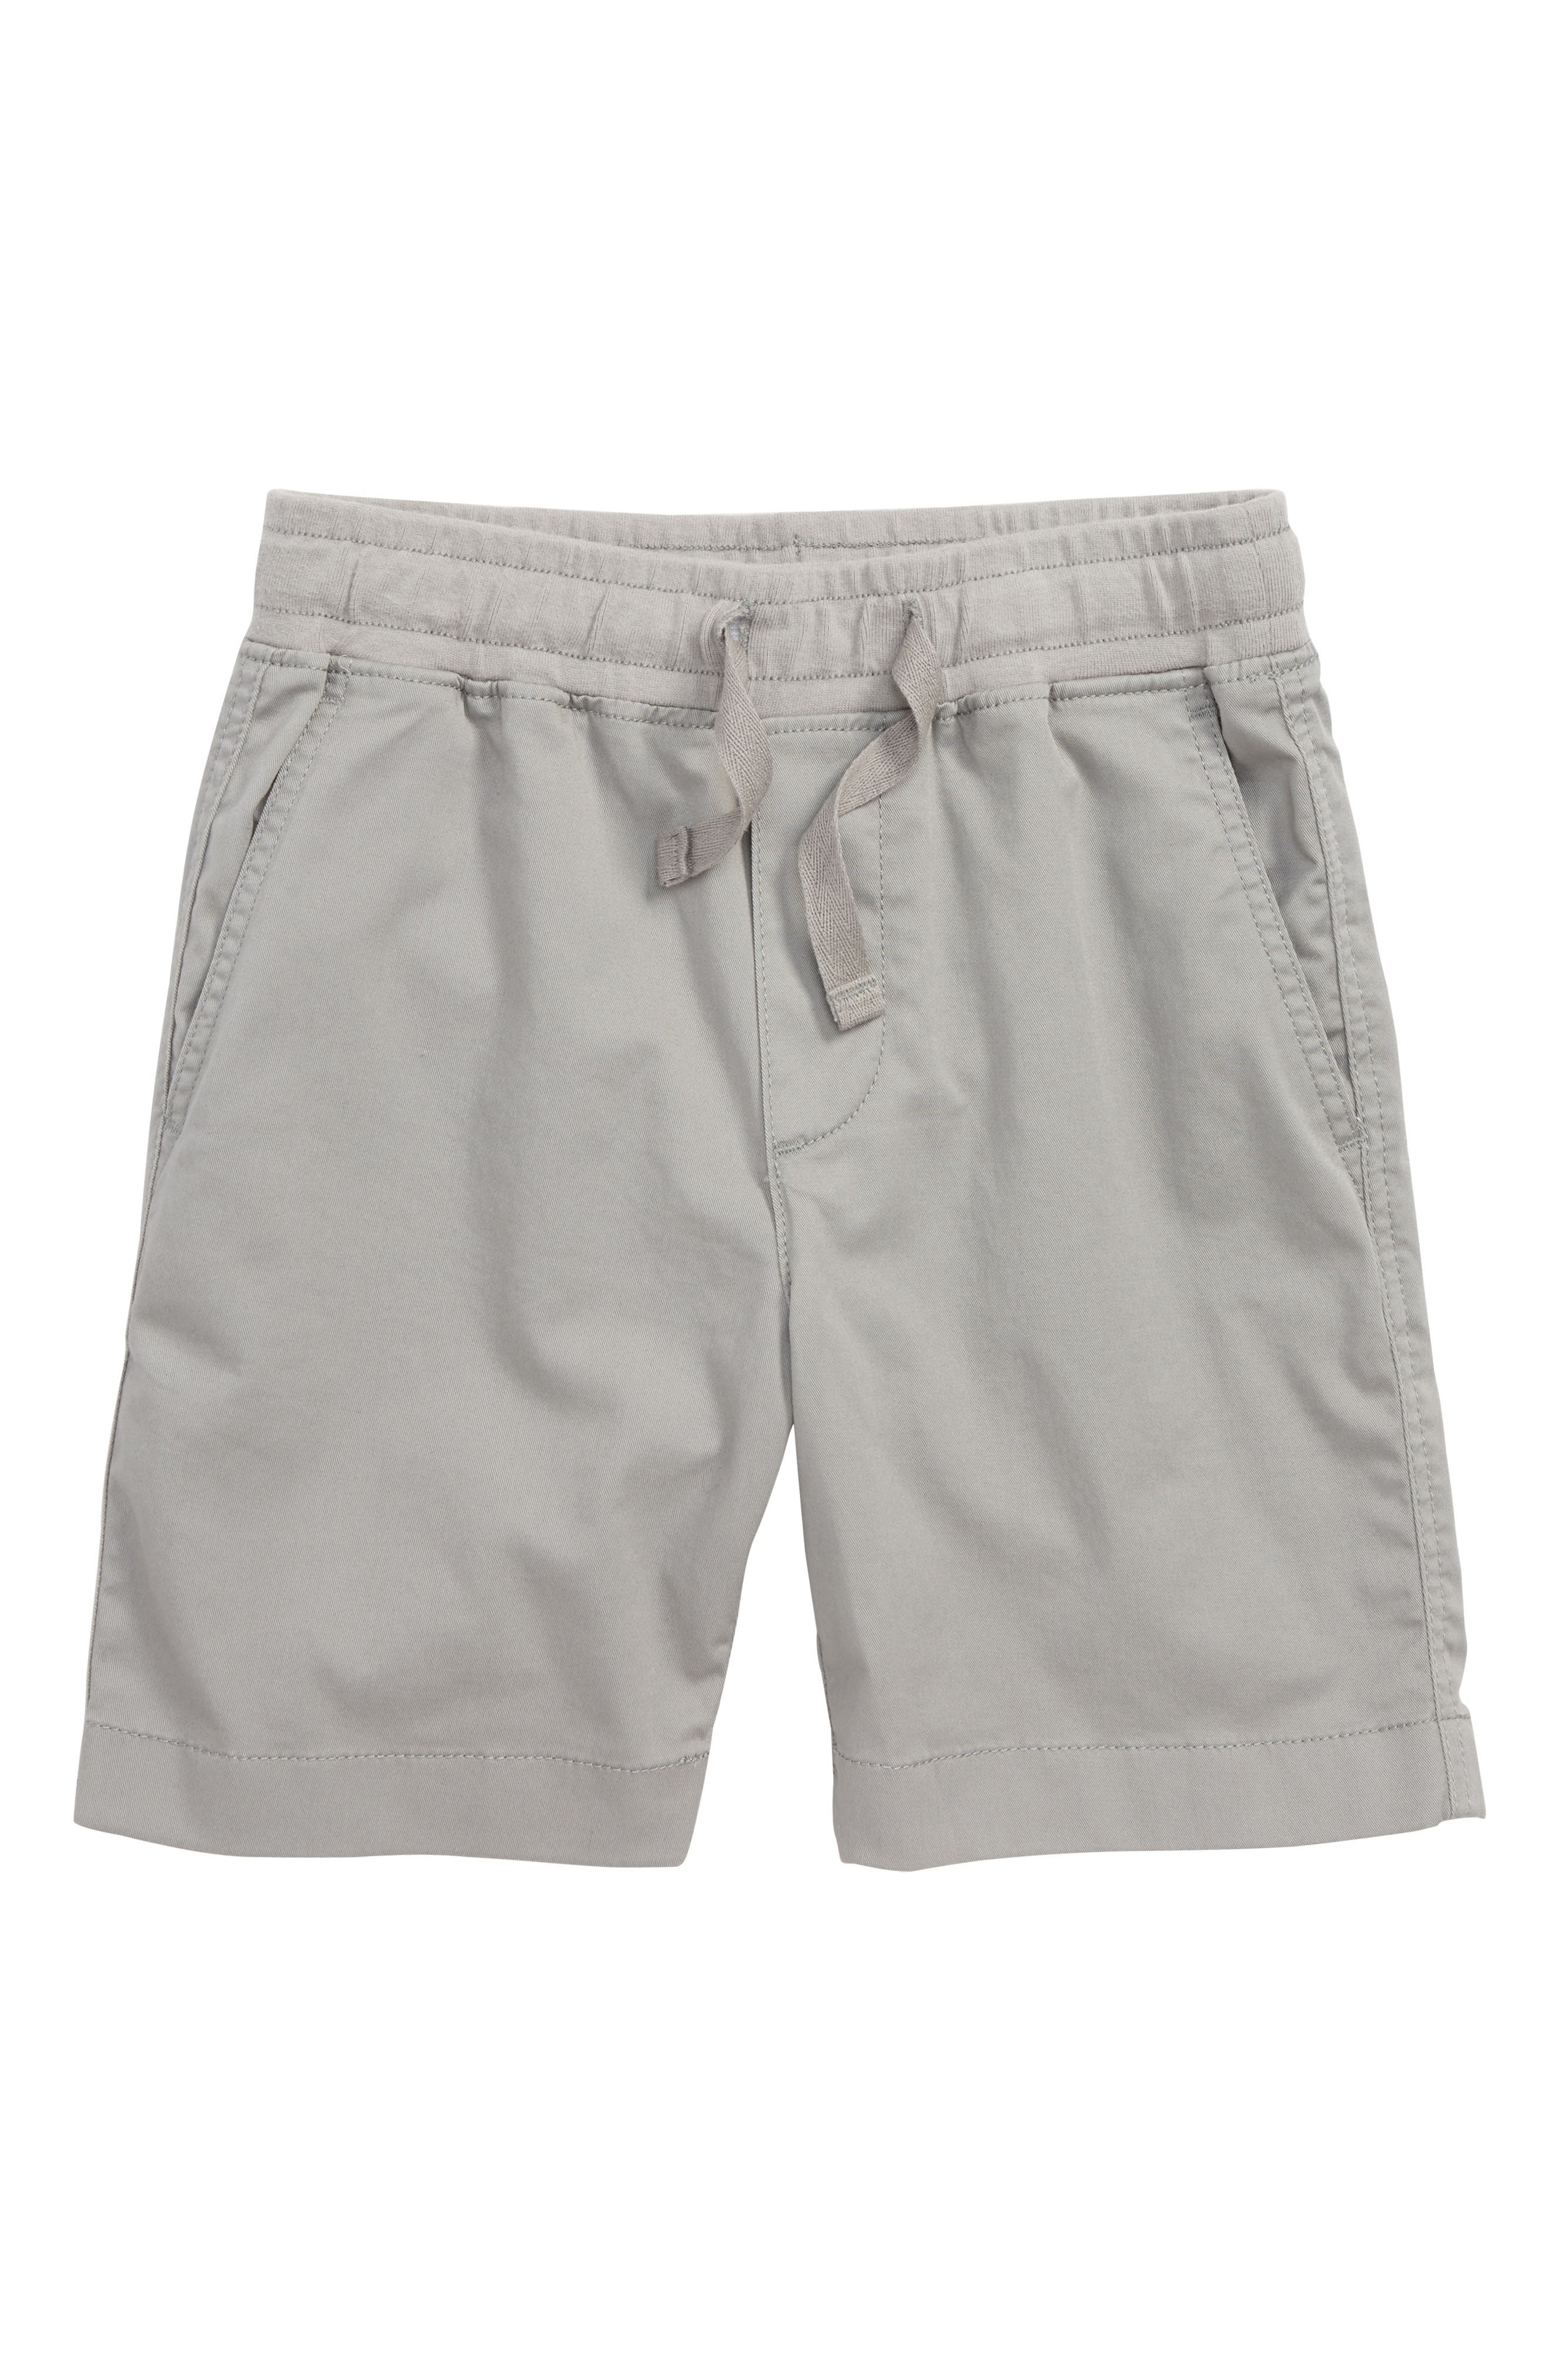 Stretch Pull-On Shorts,                         Main,                         color, 020